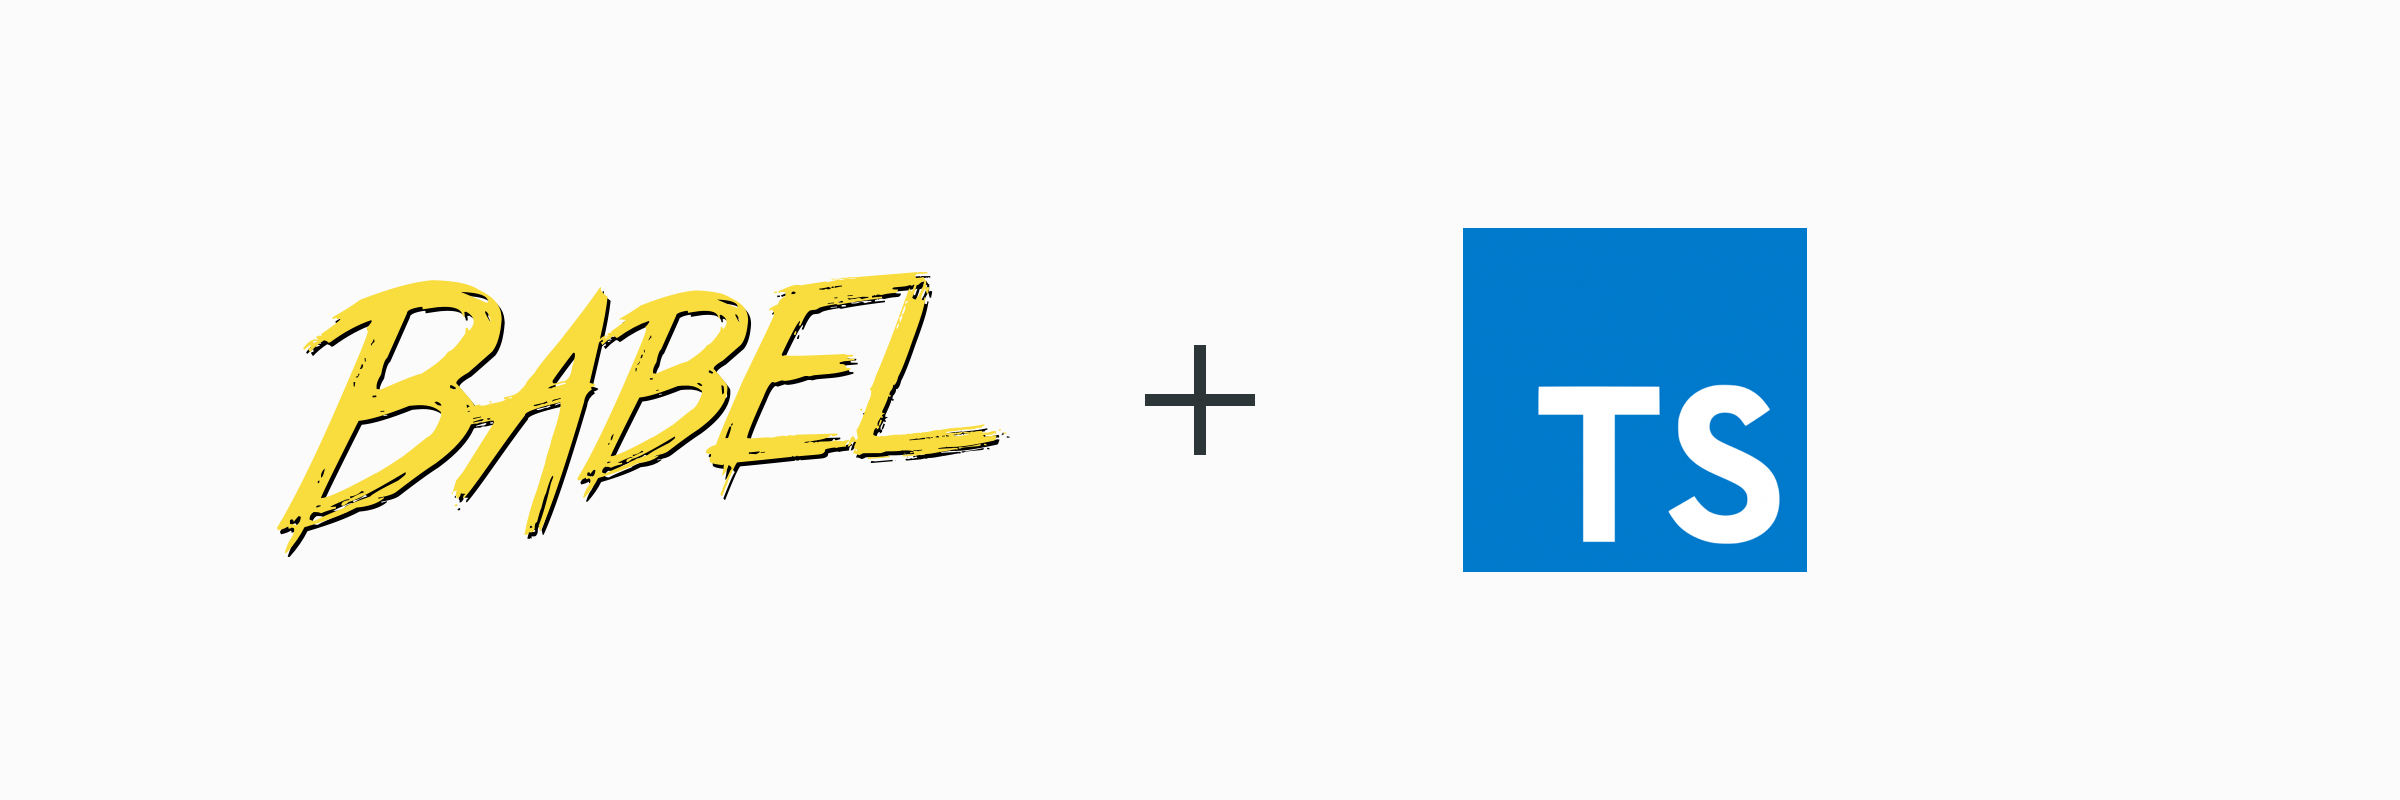 Introducing TypeScript in existing JavaScript projects with